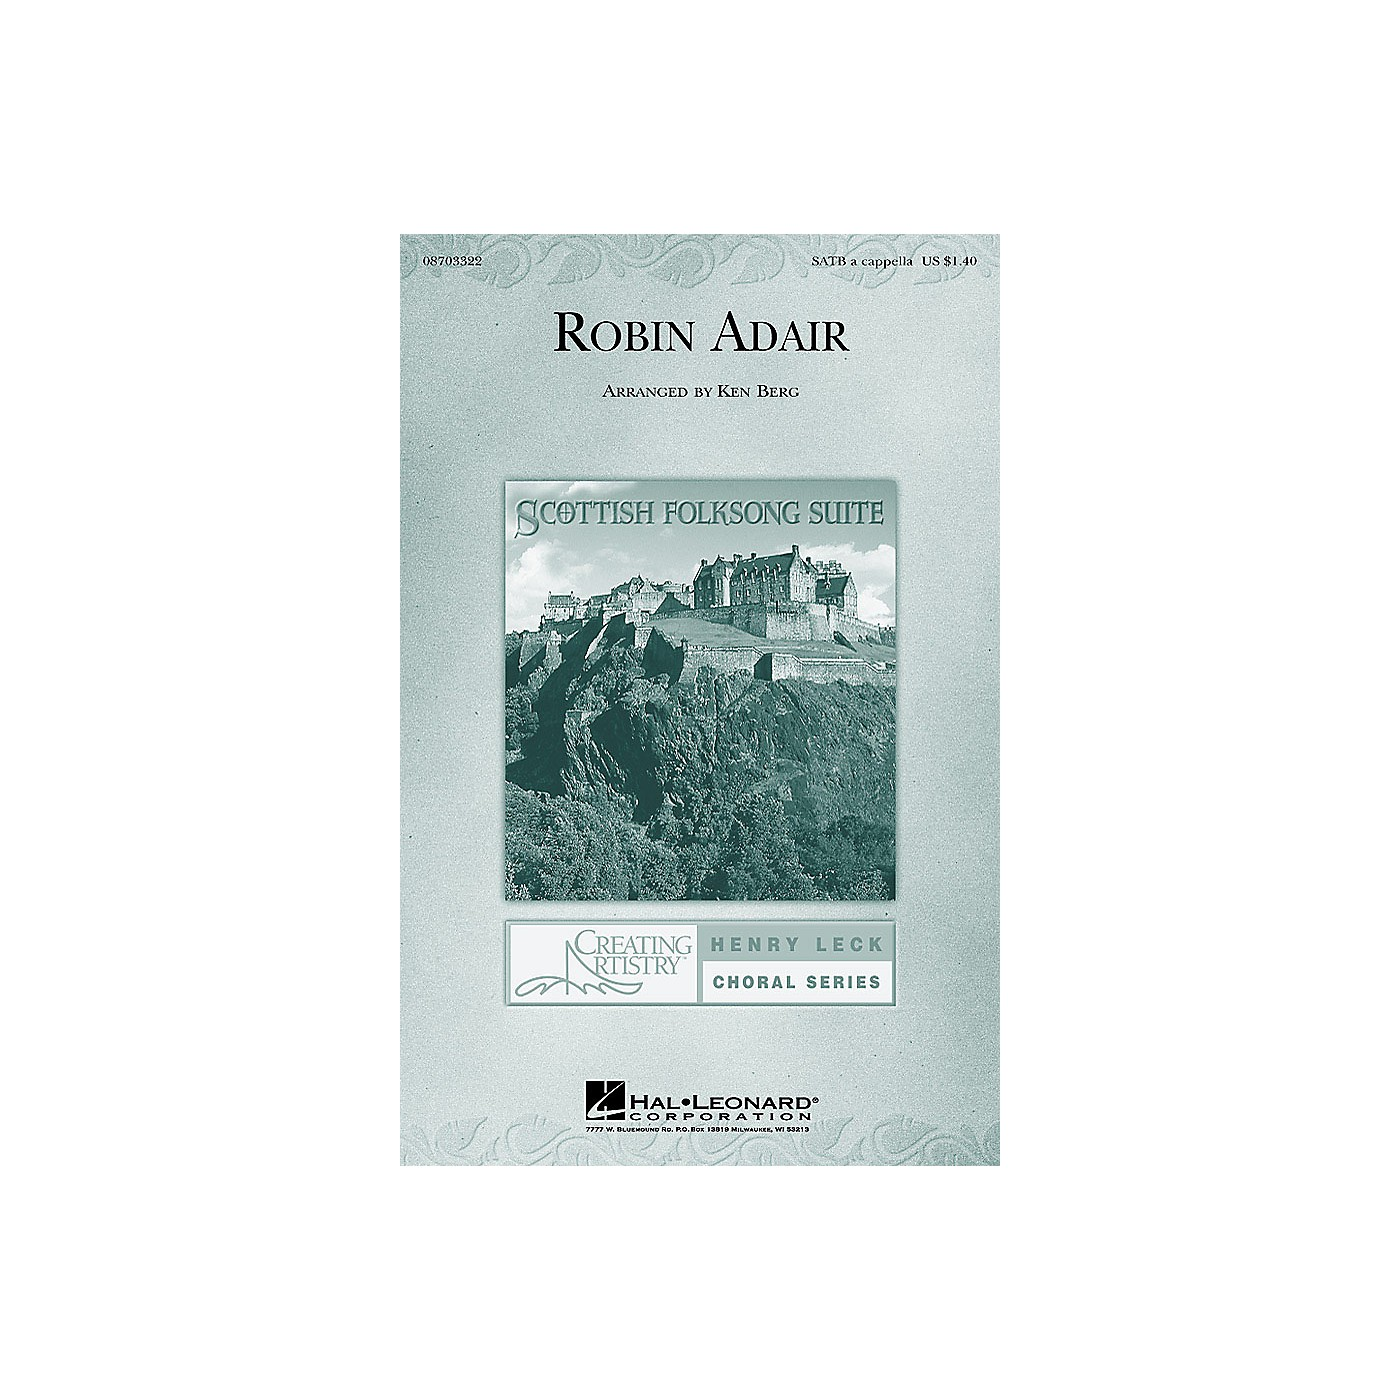 Hal Leonard Robin Adair (from Scottish Folksong Suite) SATB a cappella arranged by Ken Berg thumbnail